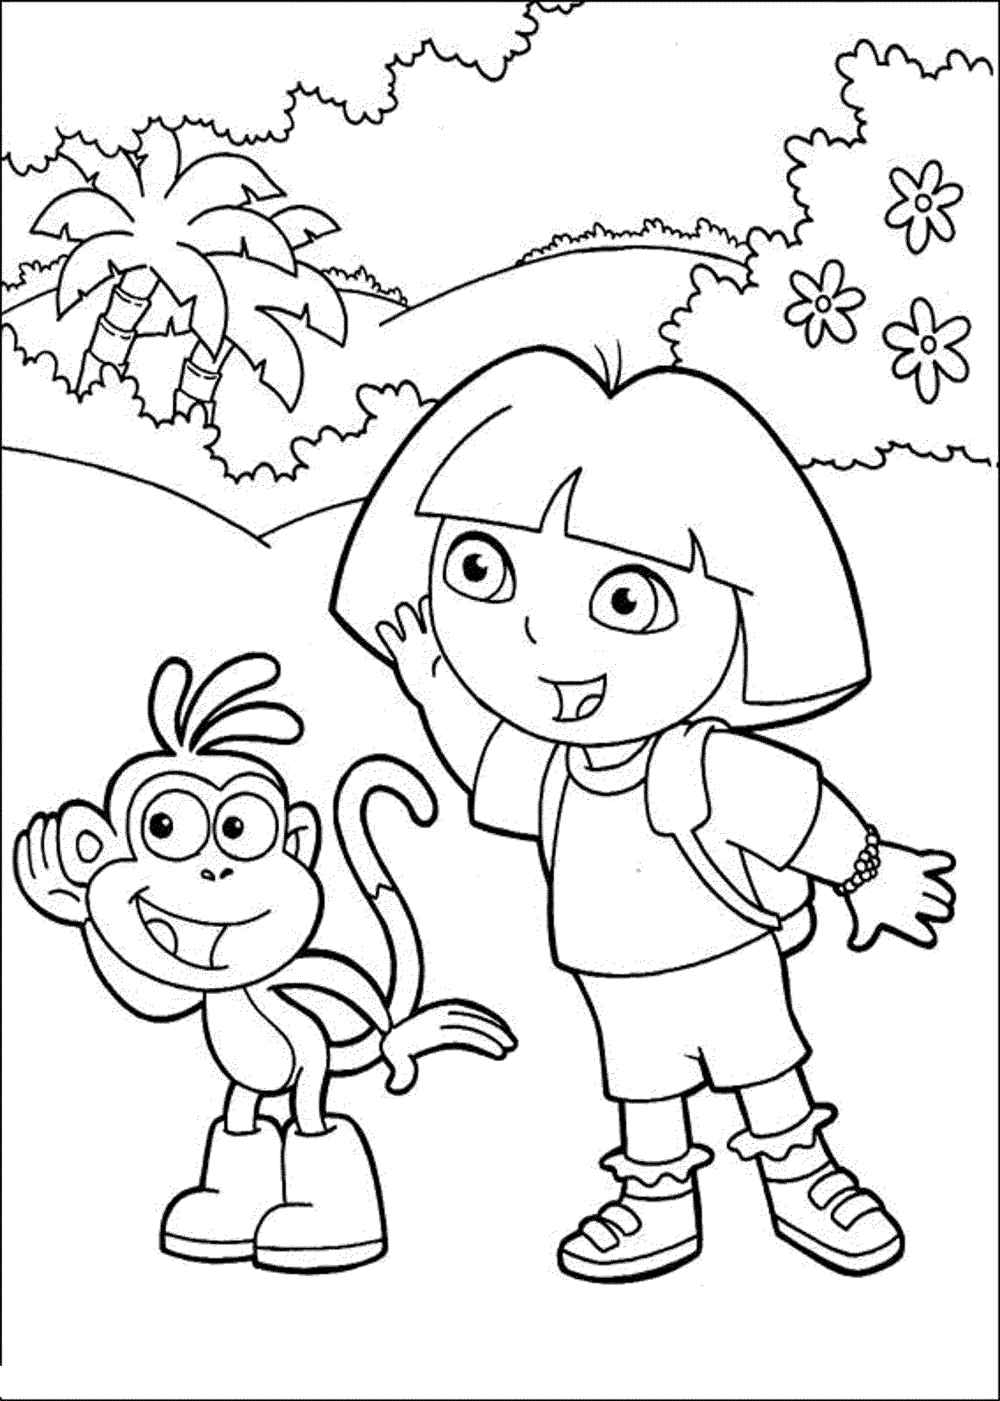 dora color pages print download dora coloring pages to learn new things pages dora color 1 1